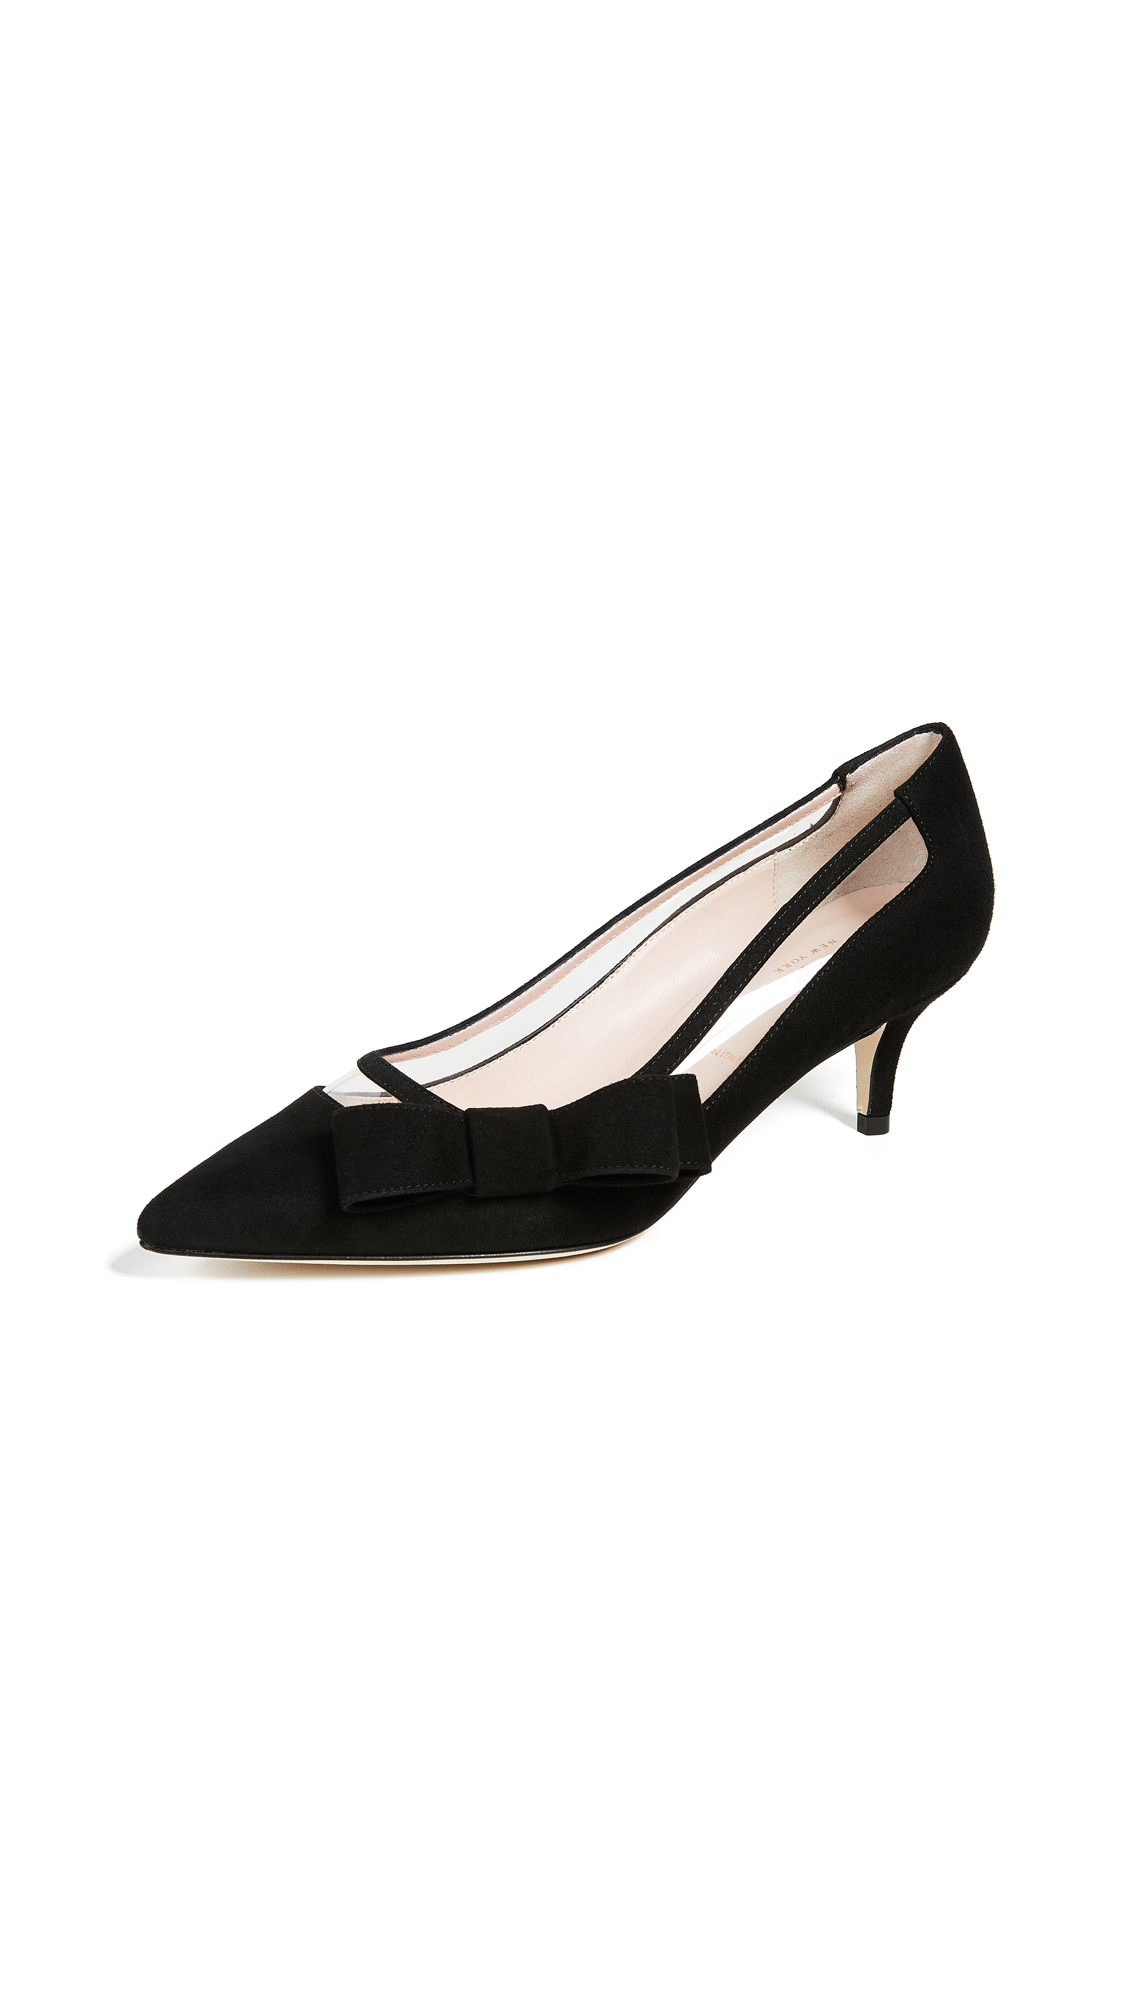 Kate Spade New York Mackensie Point Toe Pumps - Black